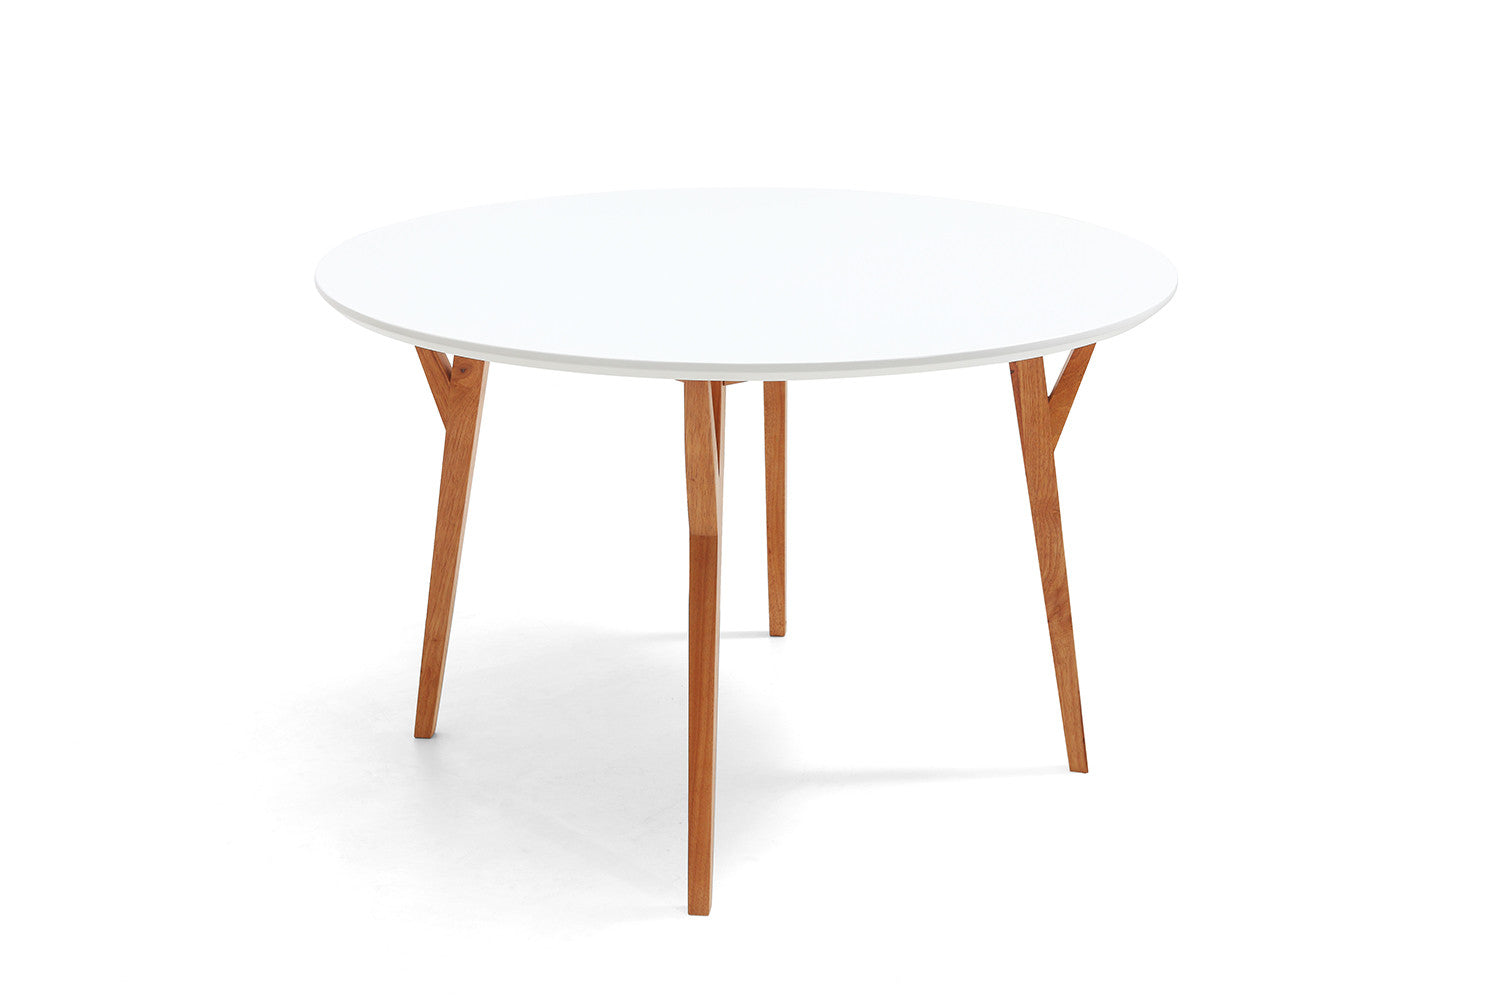 Table de salle manger ronde design scandinave moesa for Table ronde avec rallonges salle manger